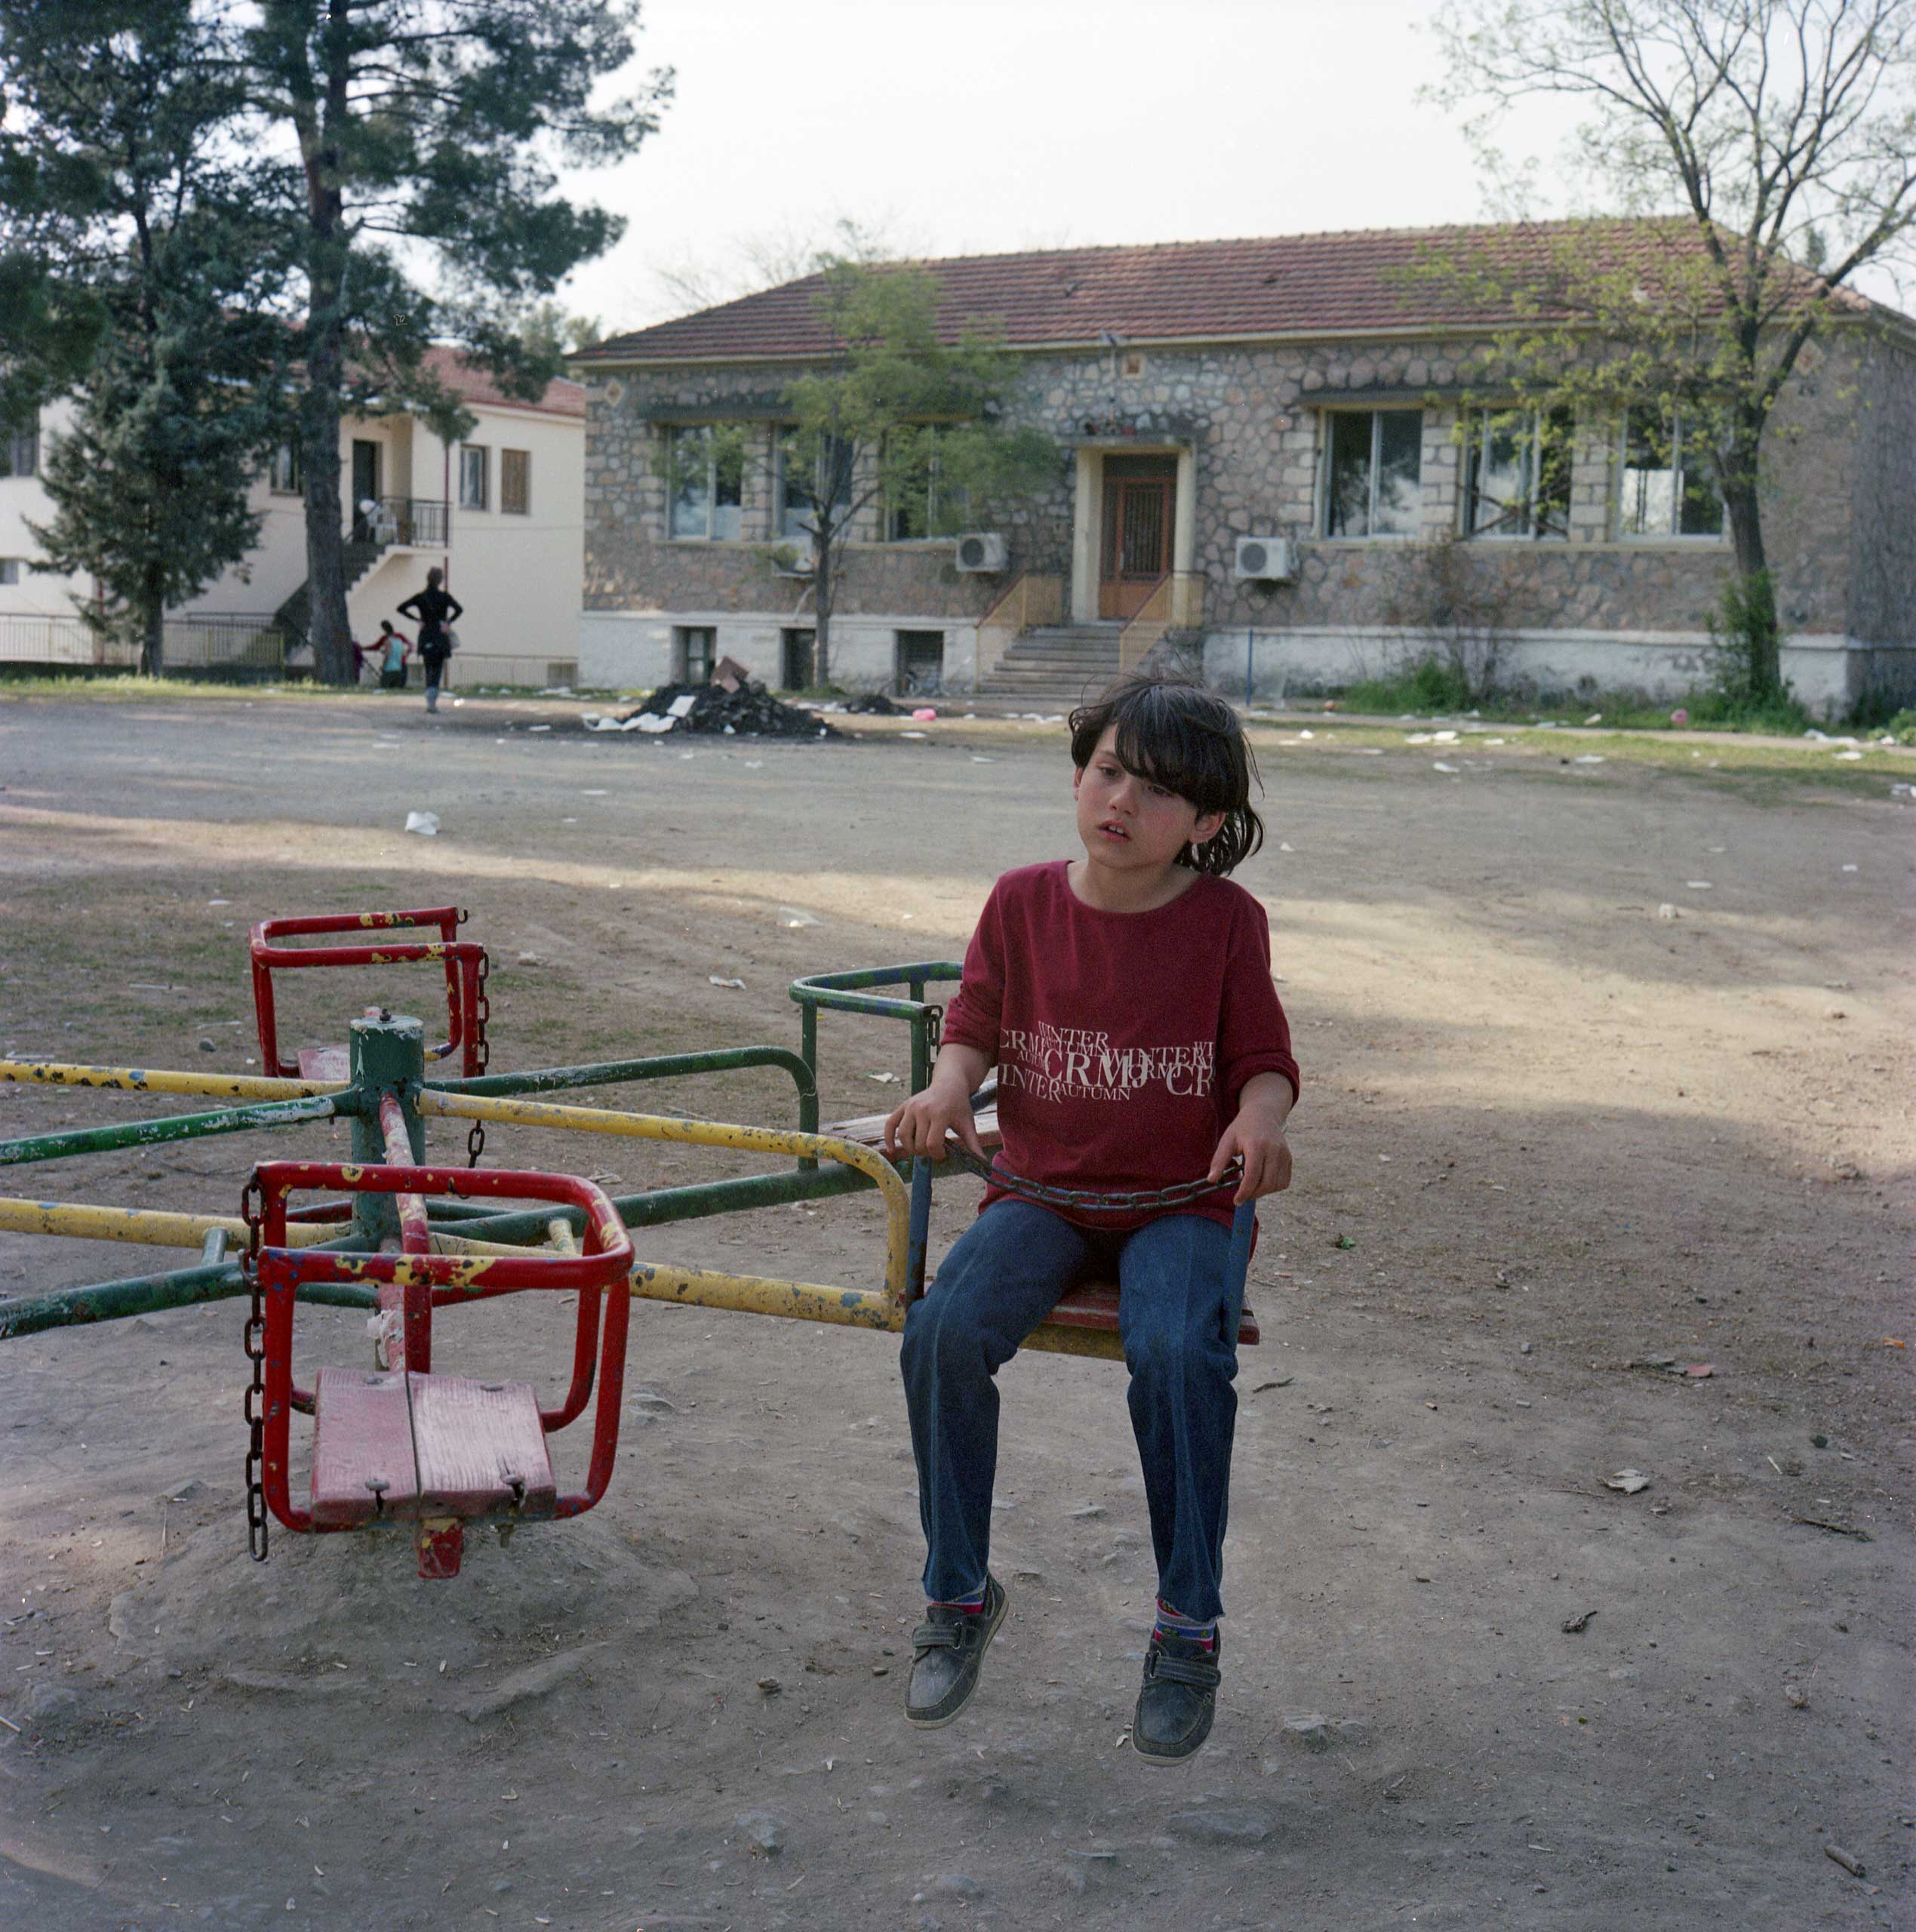 A Syrian girl plays in a park outside a school in Idomeni. The school was used as storage for food supplies until it was recently looted. Idomeni, Greece. April 2016.